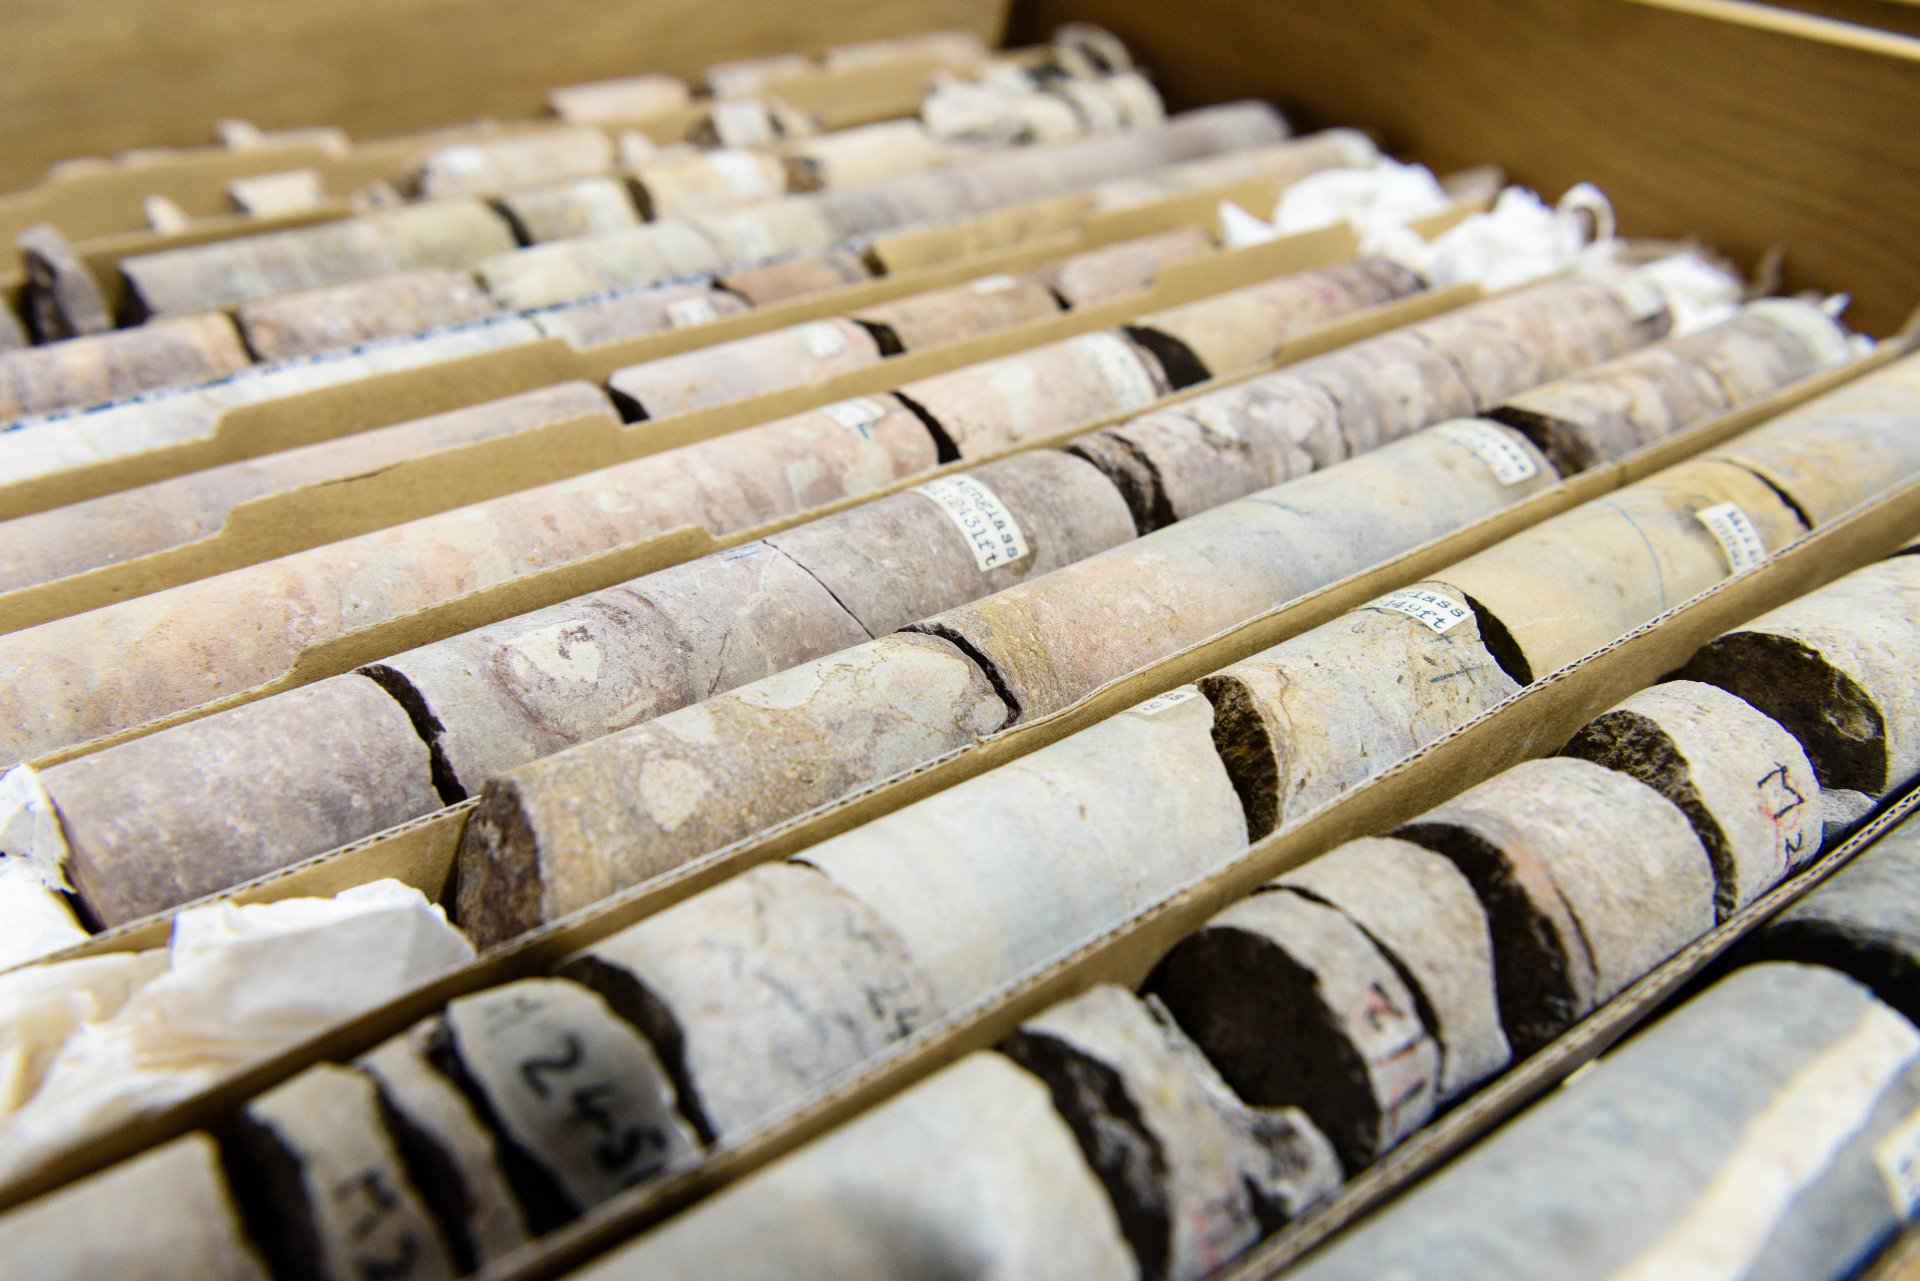 Rock core samples at the Geological Survey of Northern Ireland